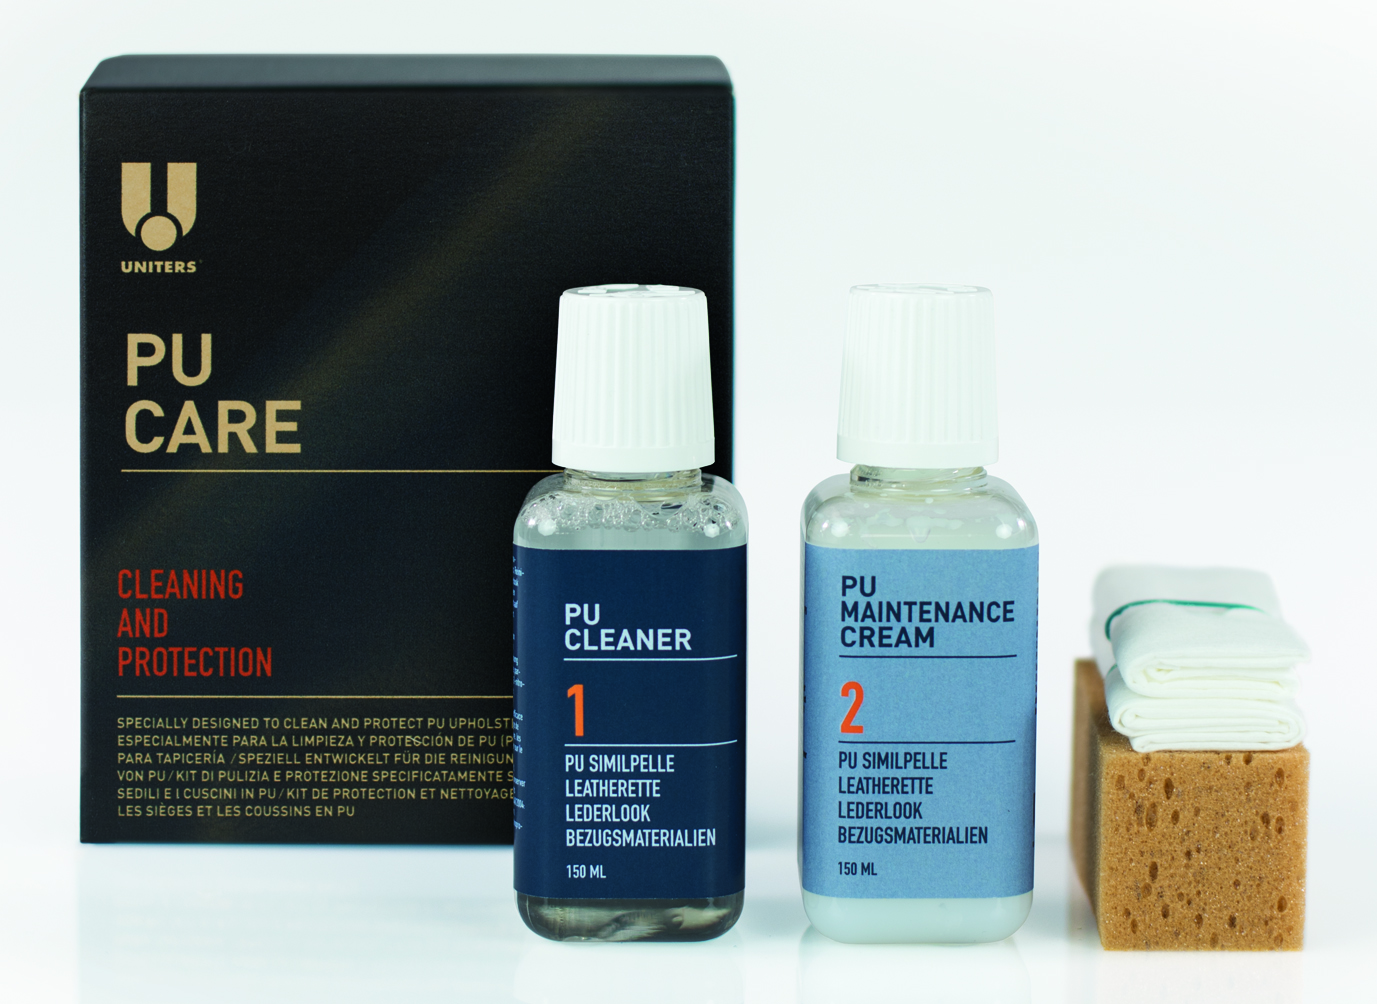 PU (Polyurethane coated leather) CARE KIT